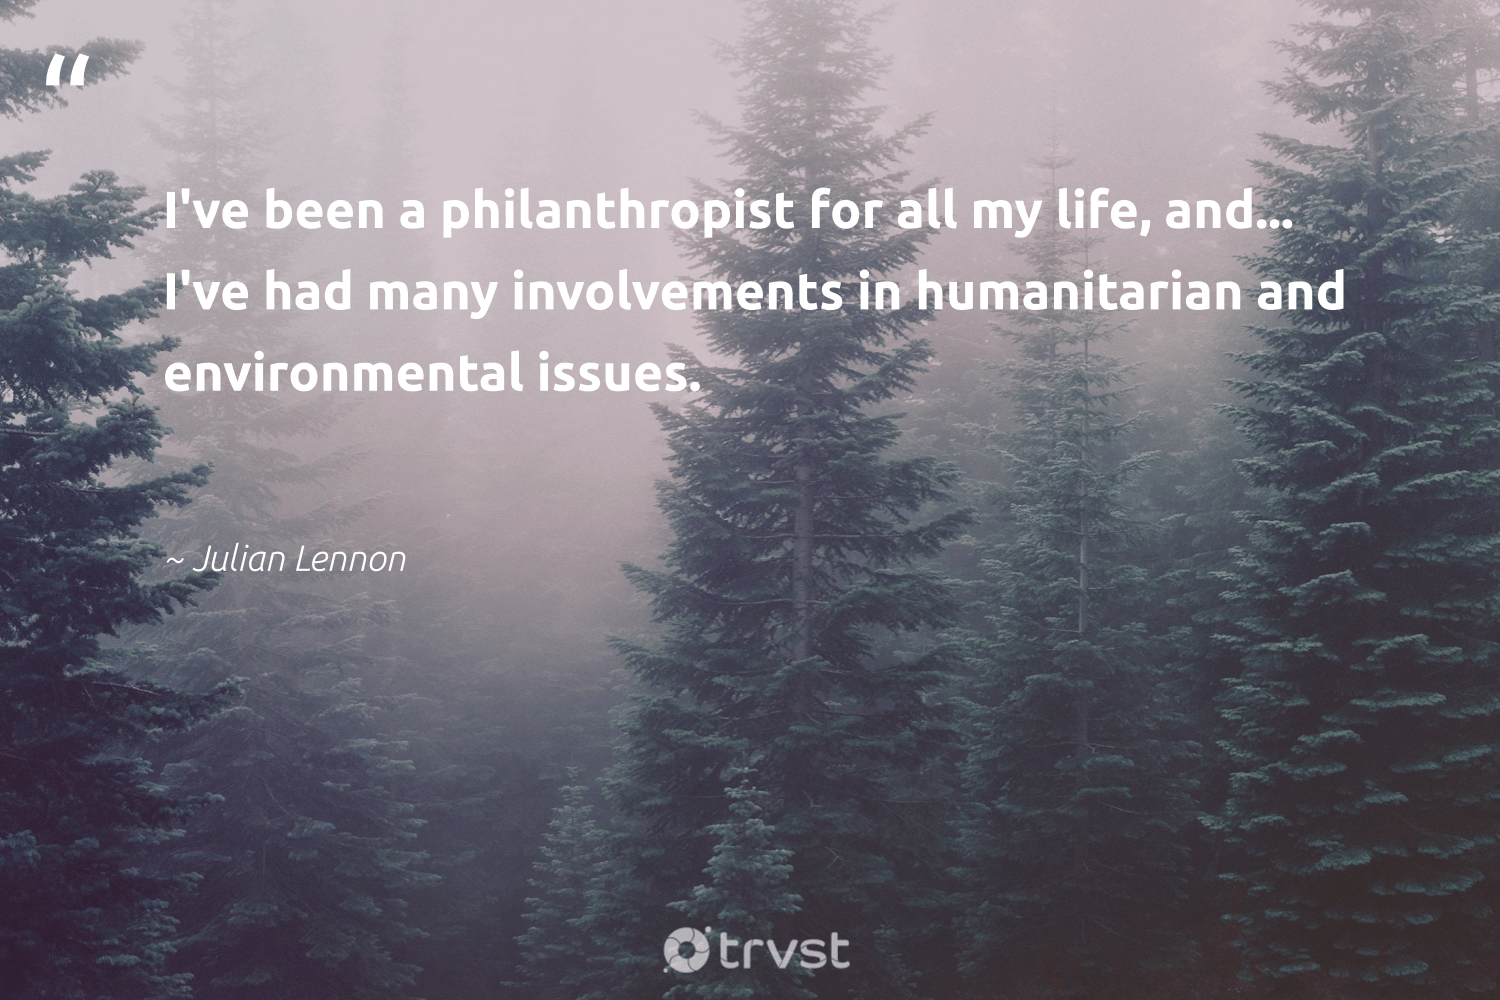 """I've been a philanthropist for all my life, and... I've had many involvements in humanitarian and environmental issues.""  - Julian Lennon #trvst #quotes #environmental #humanitarian #Charity #togetherwecan #society #changetheworld #fundraising #giveforthefuture #weareallone #planetearthfirst"